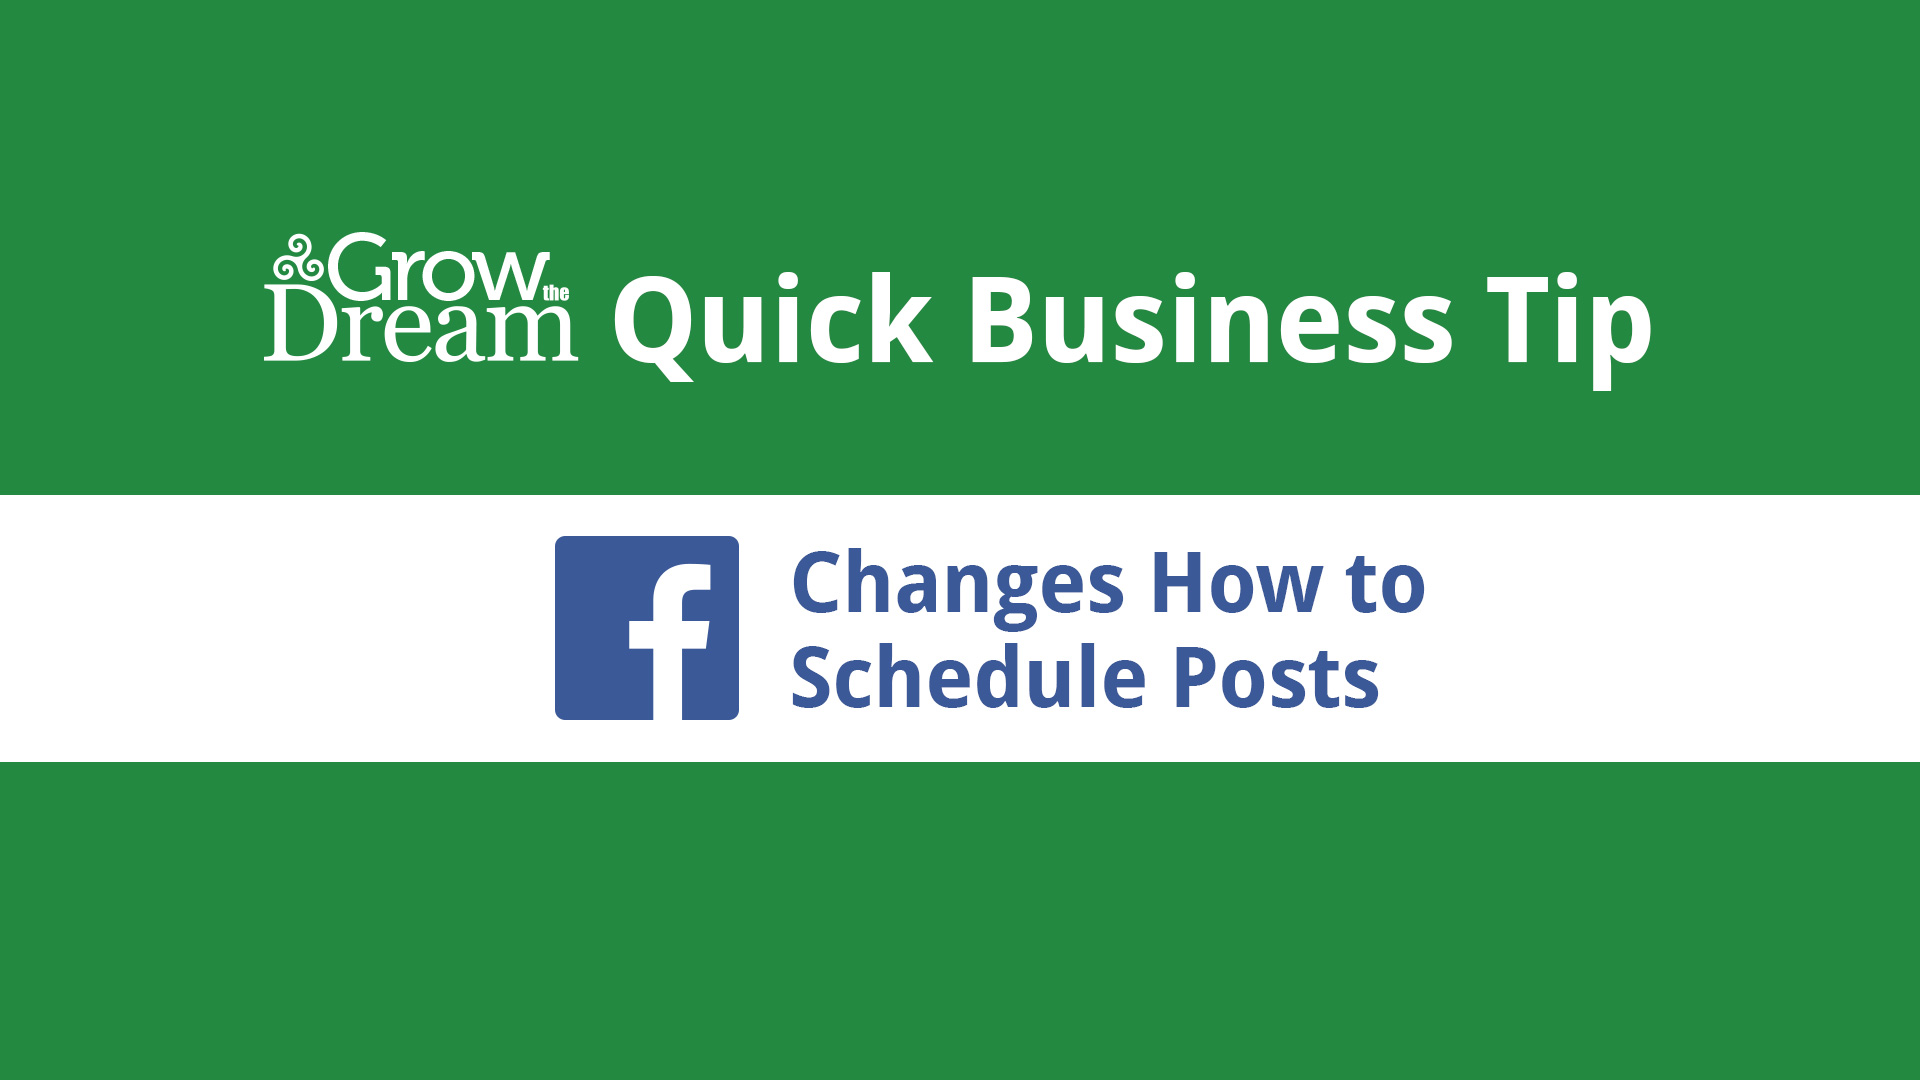 [Video] How to Schedule Posts on Your Facebook Page